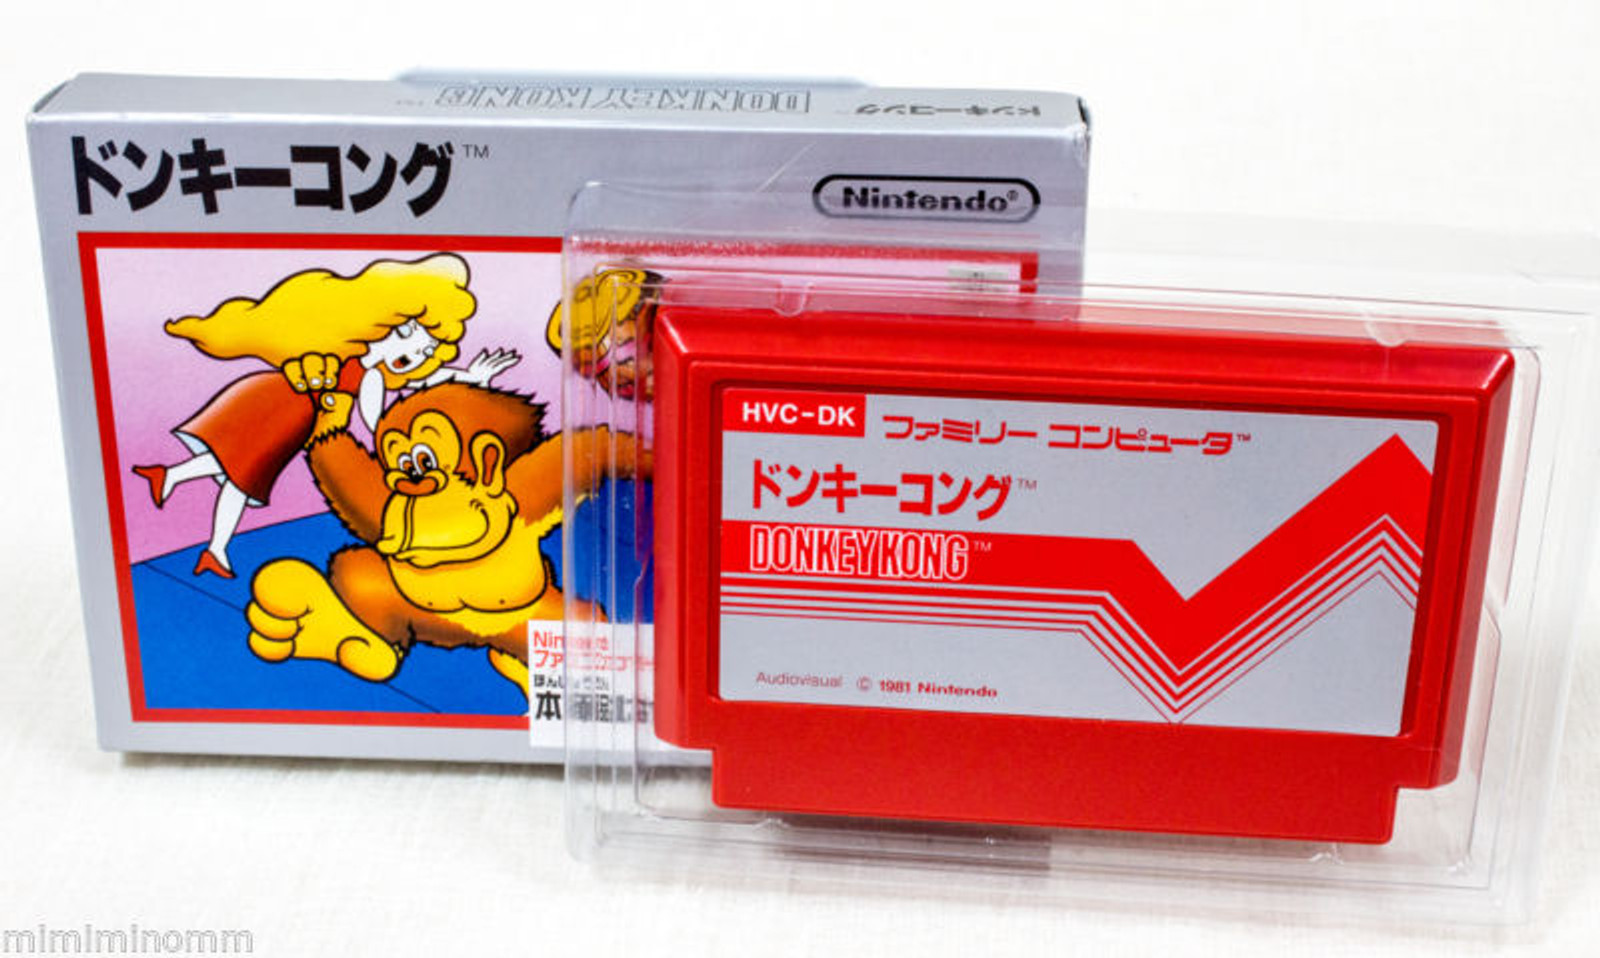 Nintendo DONKEY KONG NES Famicom Casette Type Accessory case JAPAN GAME